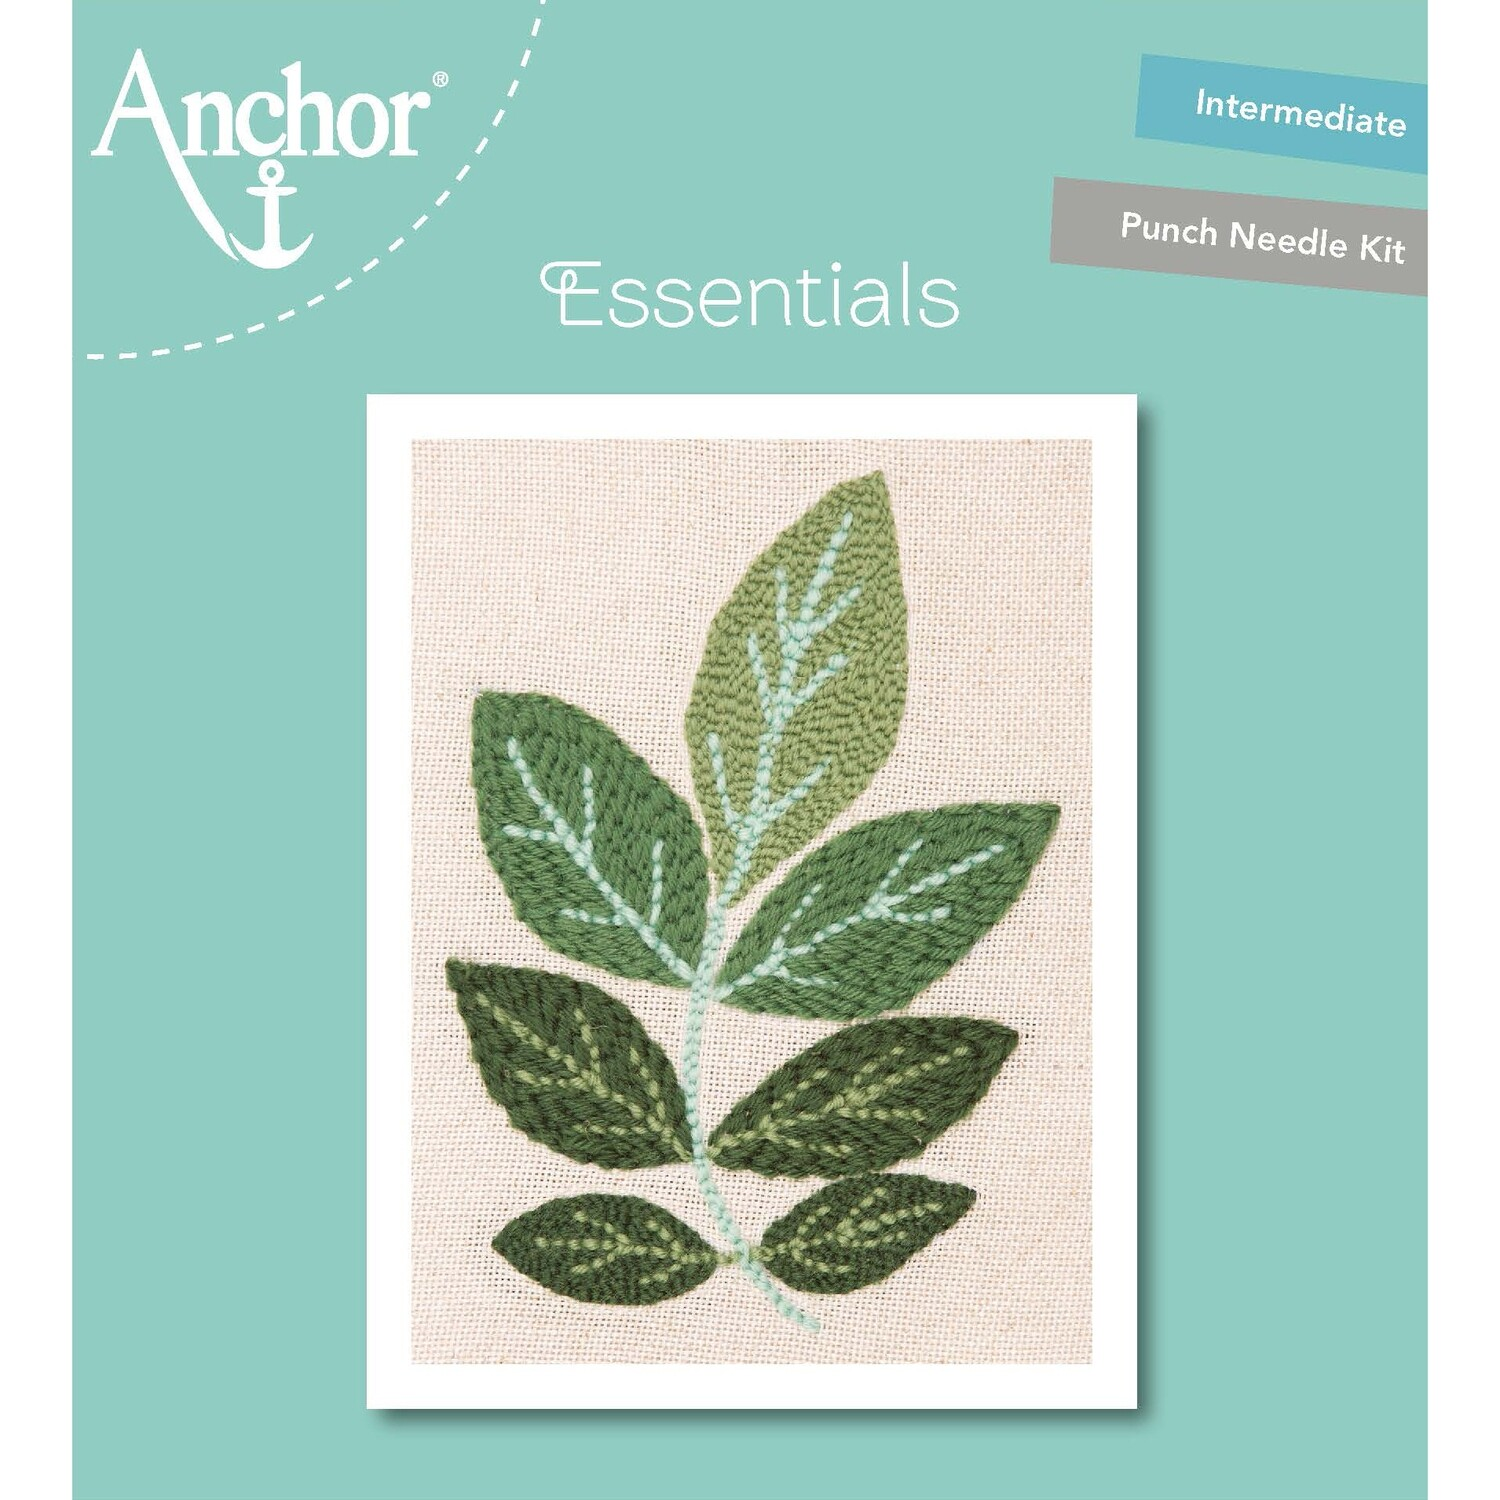 Anchor Essentials Punch Needle Kit - Ash leaf (20 cm)